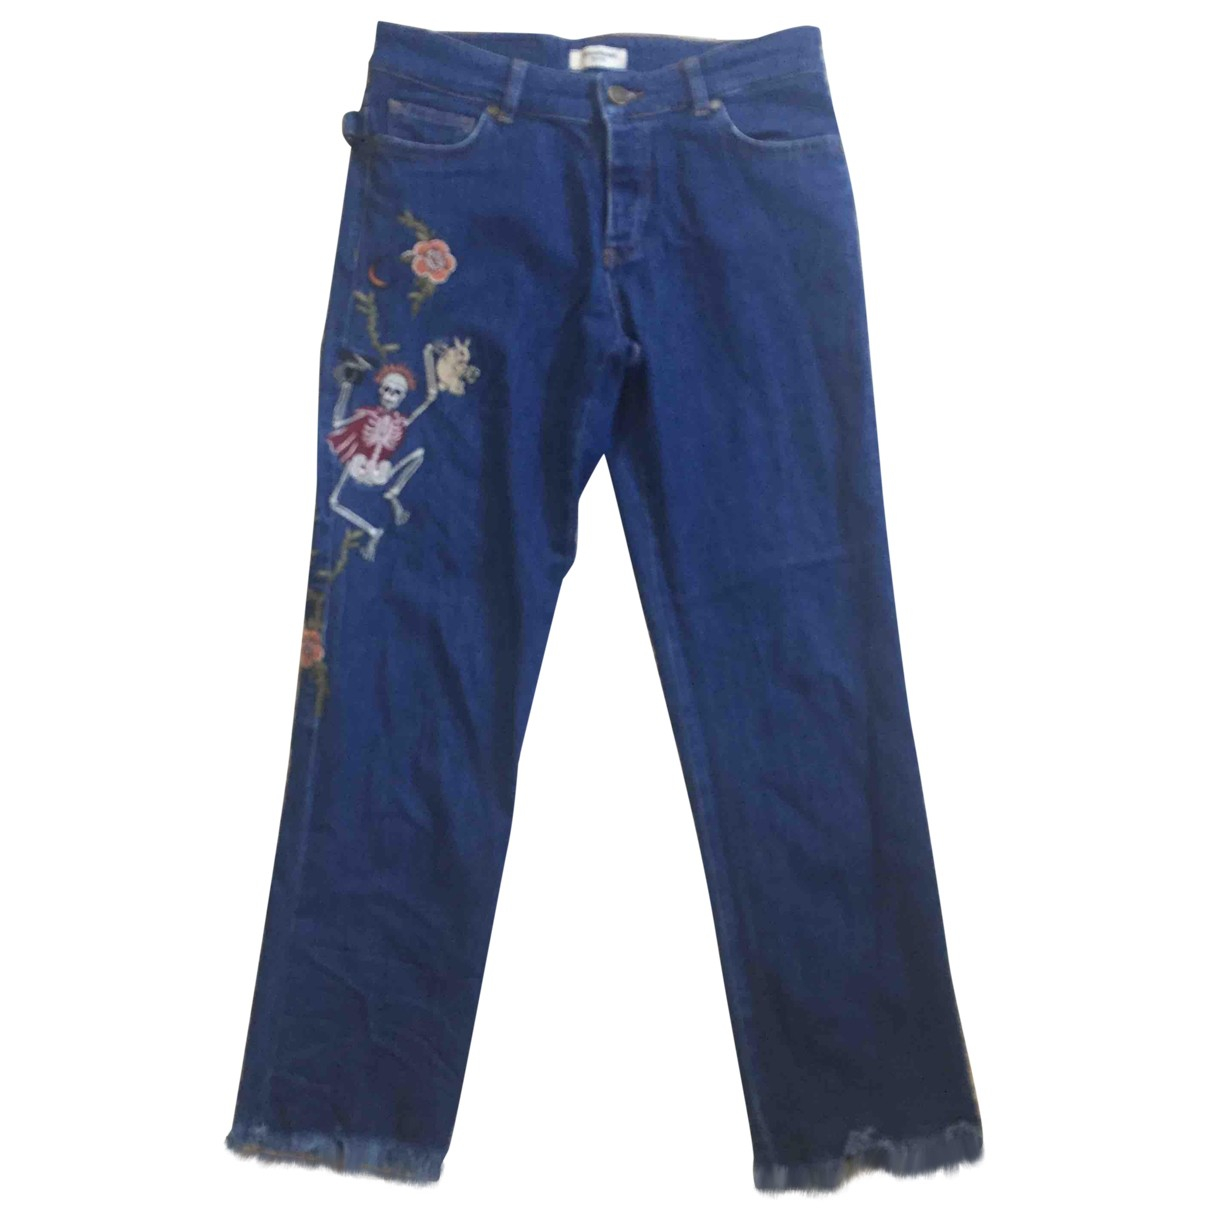 Zadig & Voltaire \N Blue Cotton - elasthane Jeans for Women 25 US